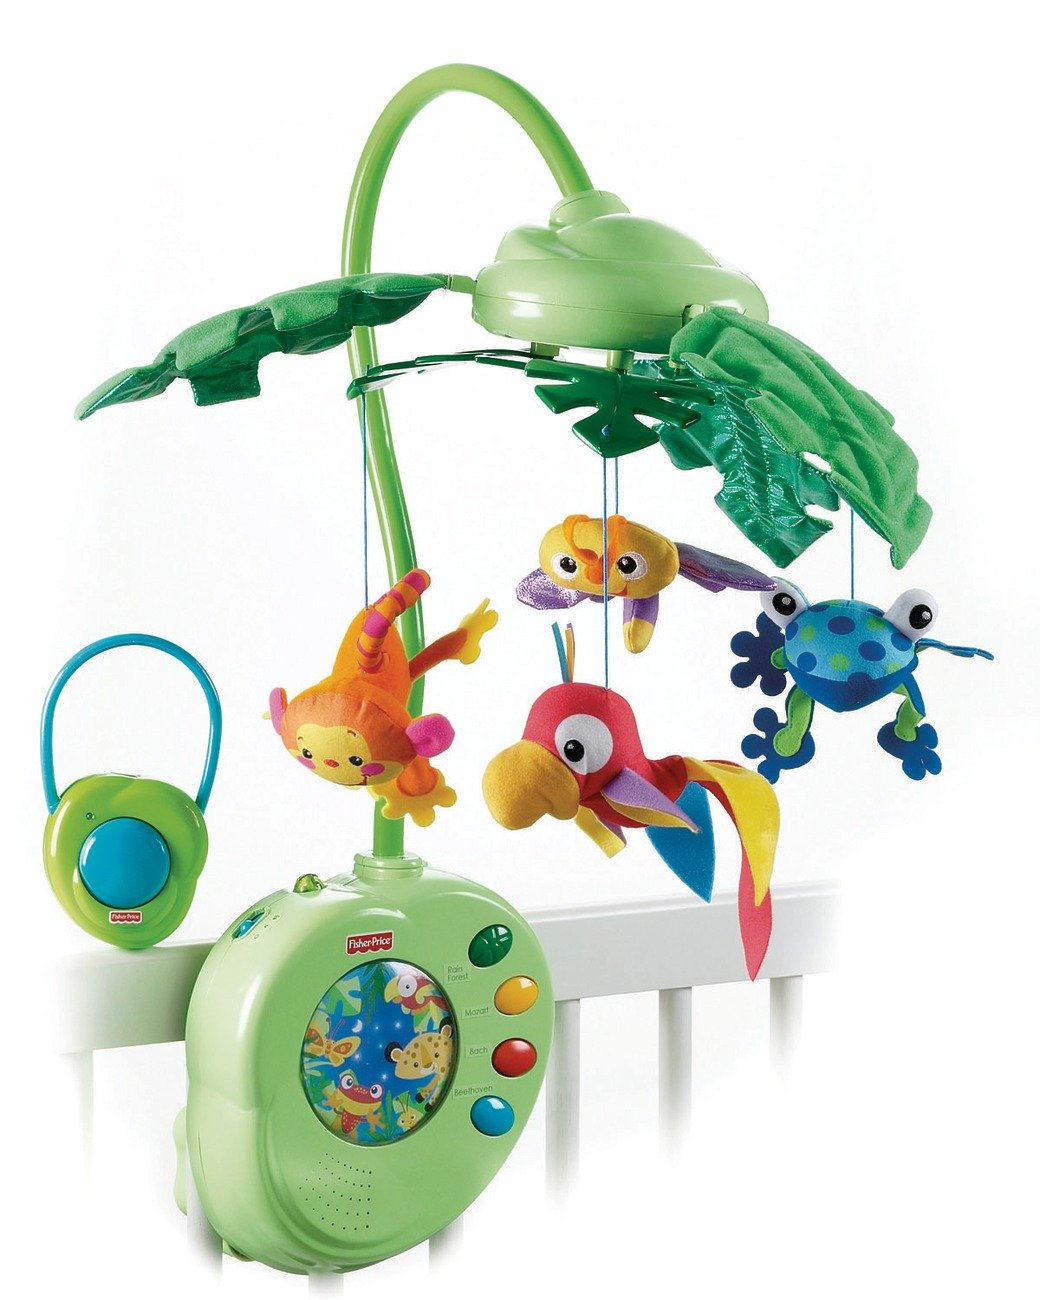 Fisher-Price Rainforest Peek-A-Boo Leaves Musical Mobile Mattel K3799